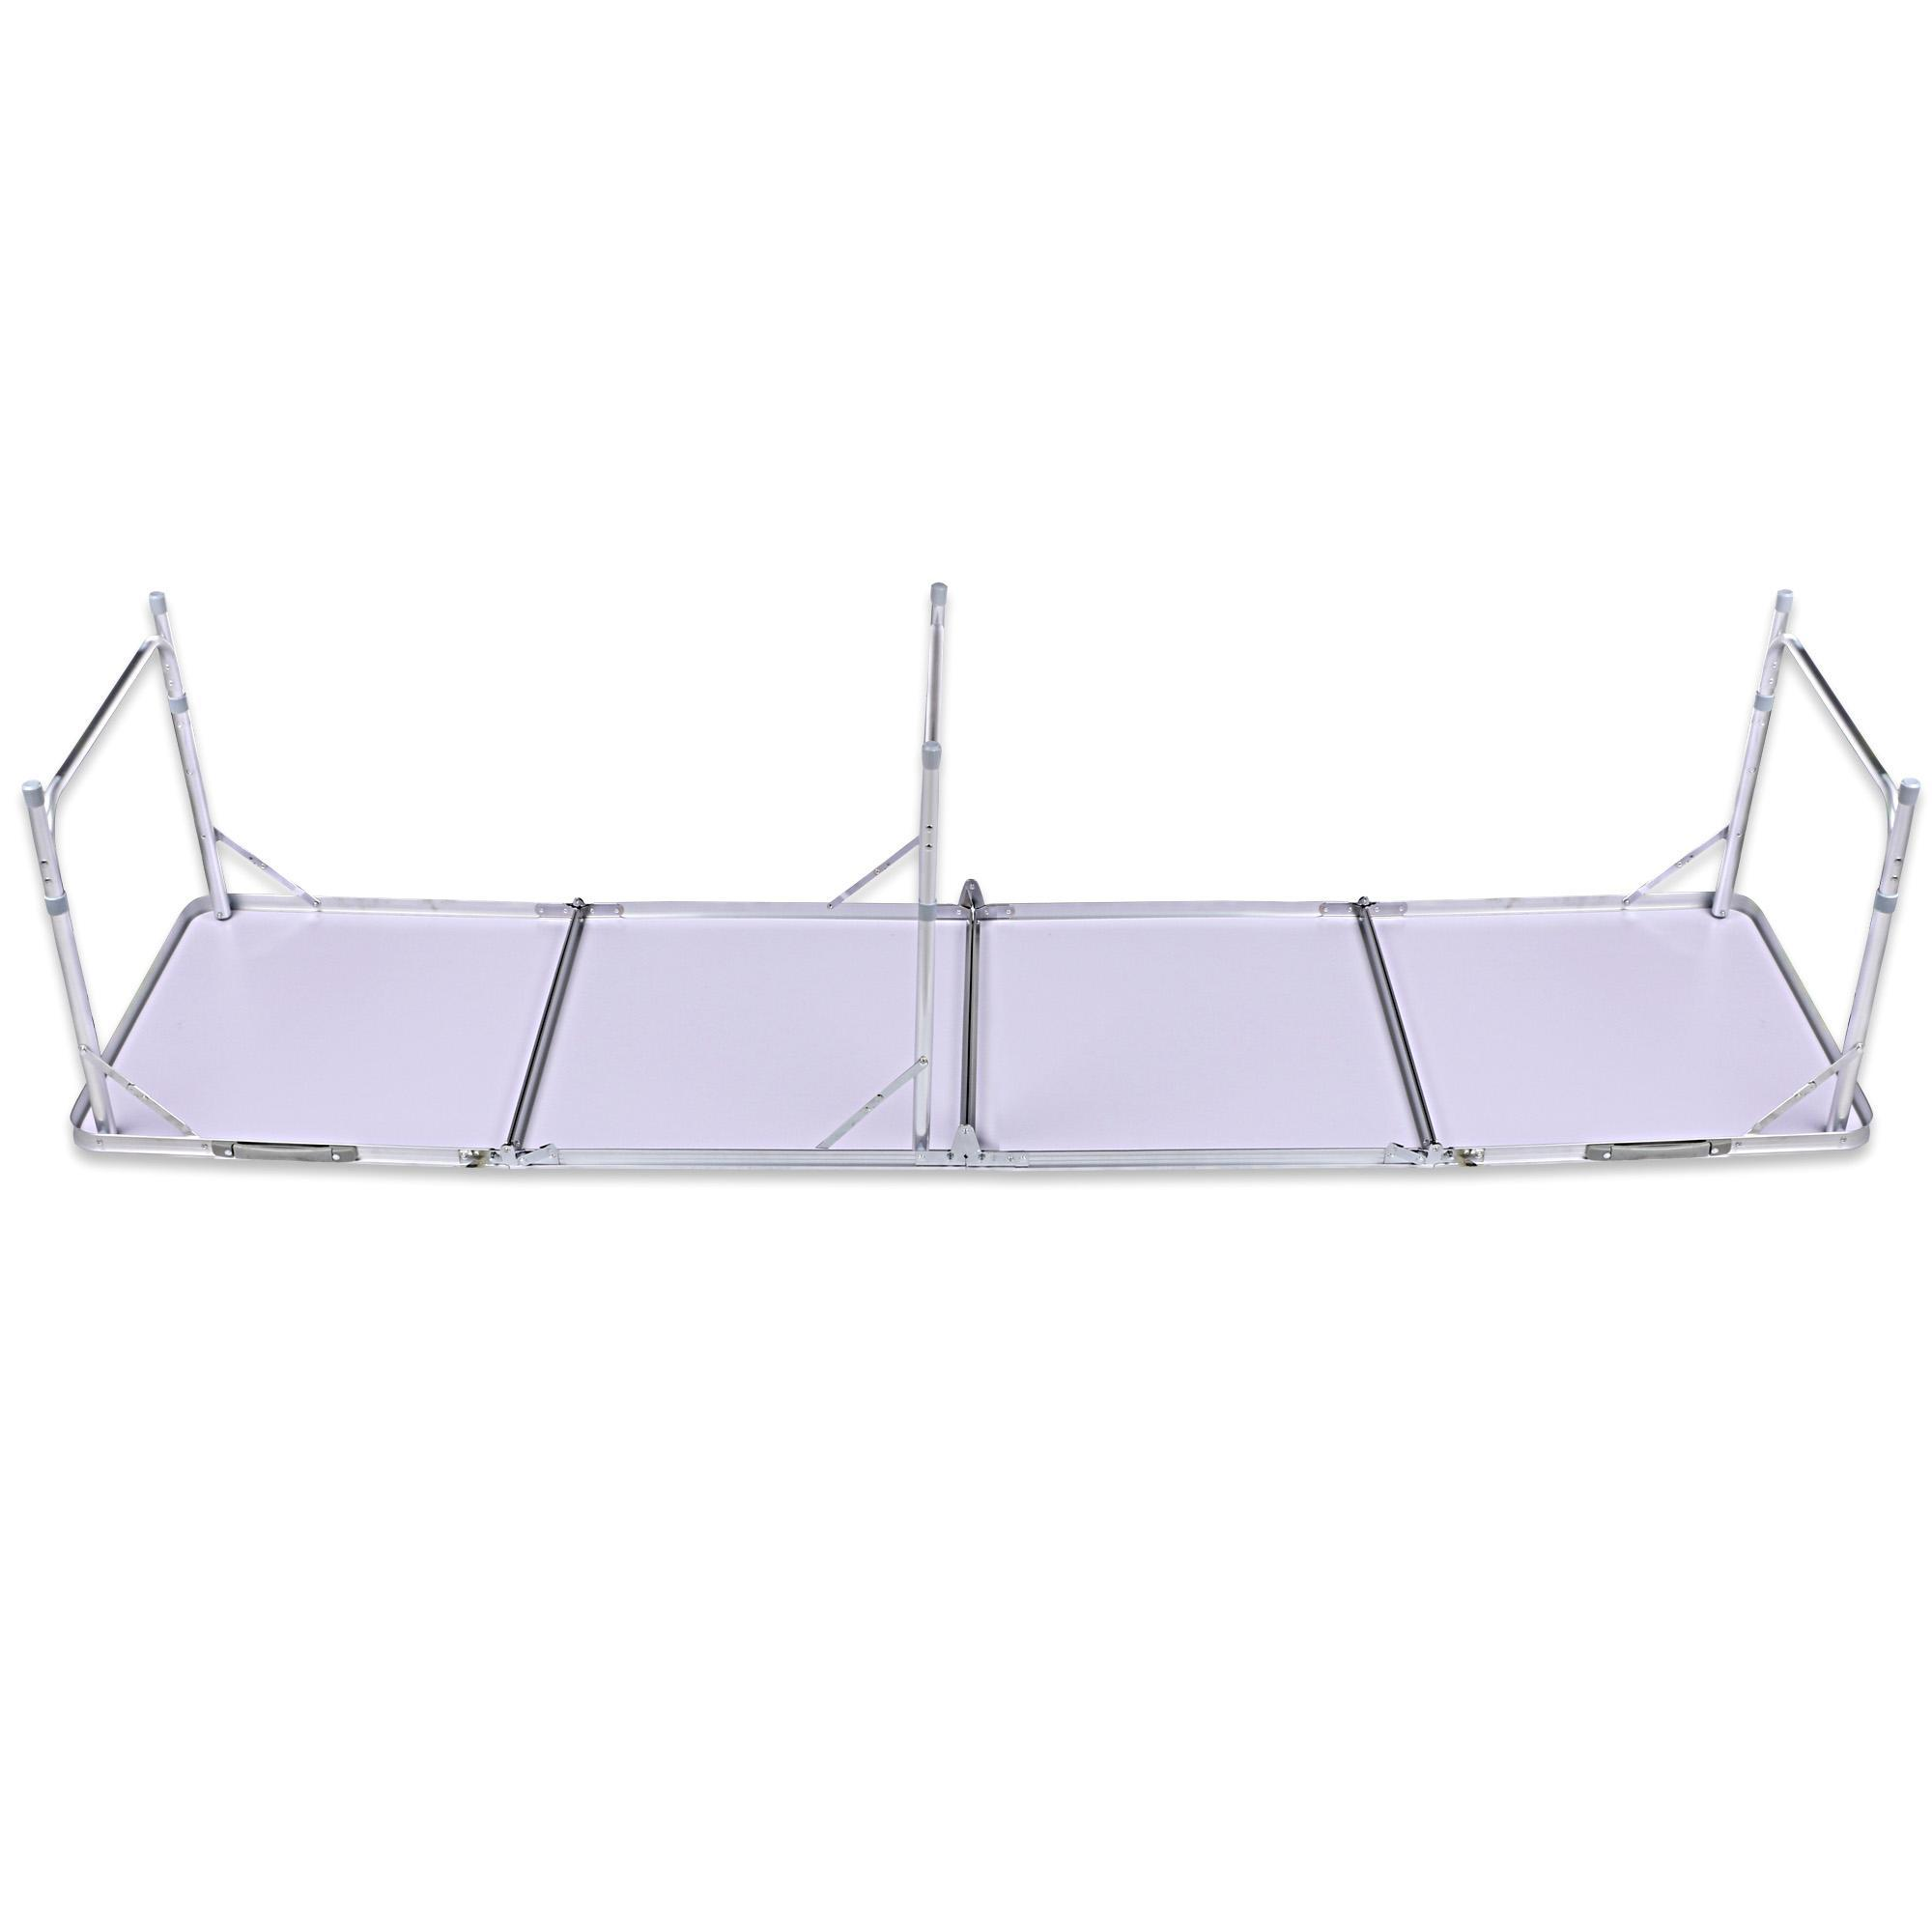 Aluminum 4 In 1 Folding Portable Extension Square Picnic Camping Table Carrying Handle 2